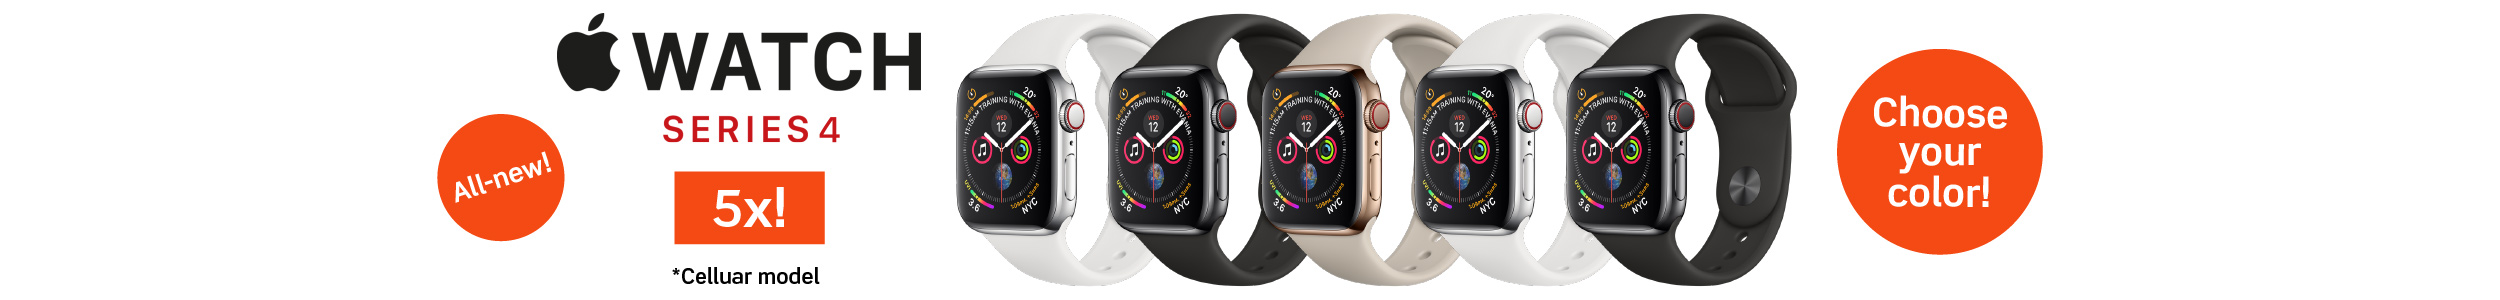 Apple Watch Series 4 (GPS + Cellular) - Stainless Steel